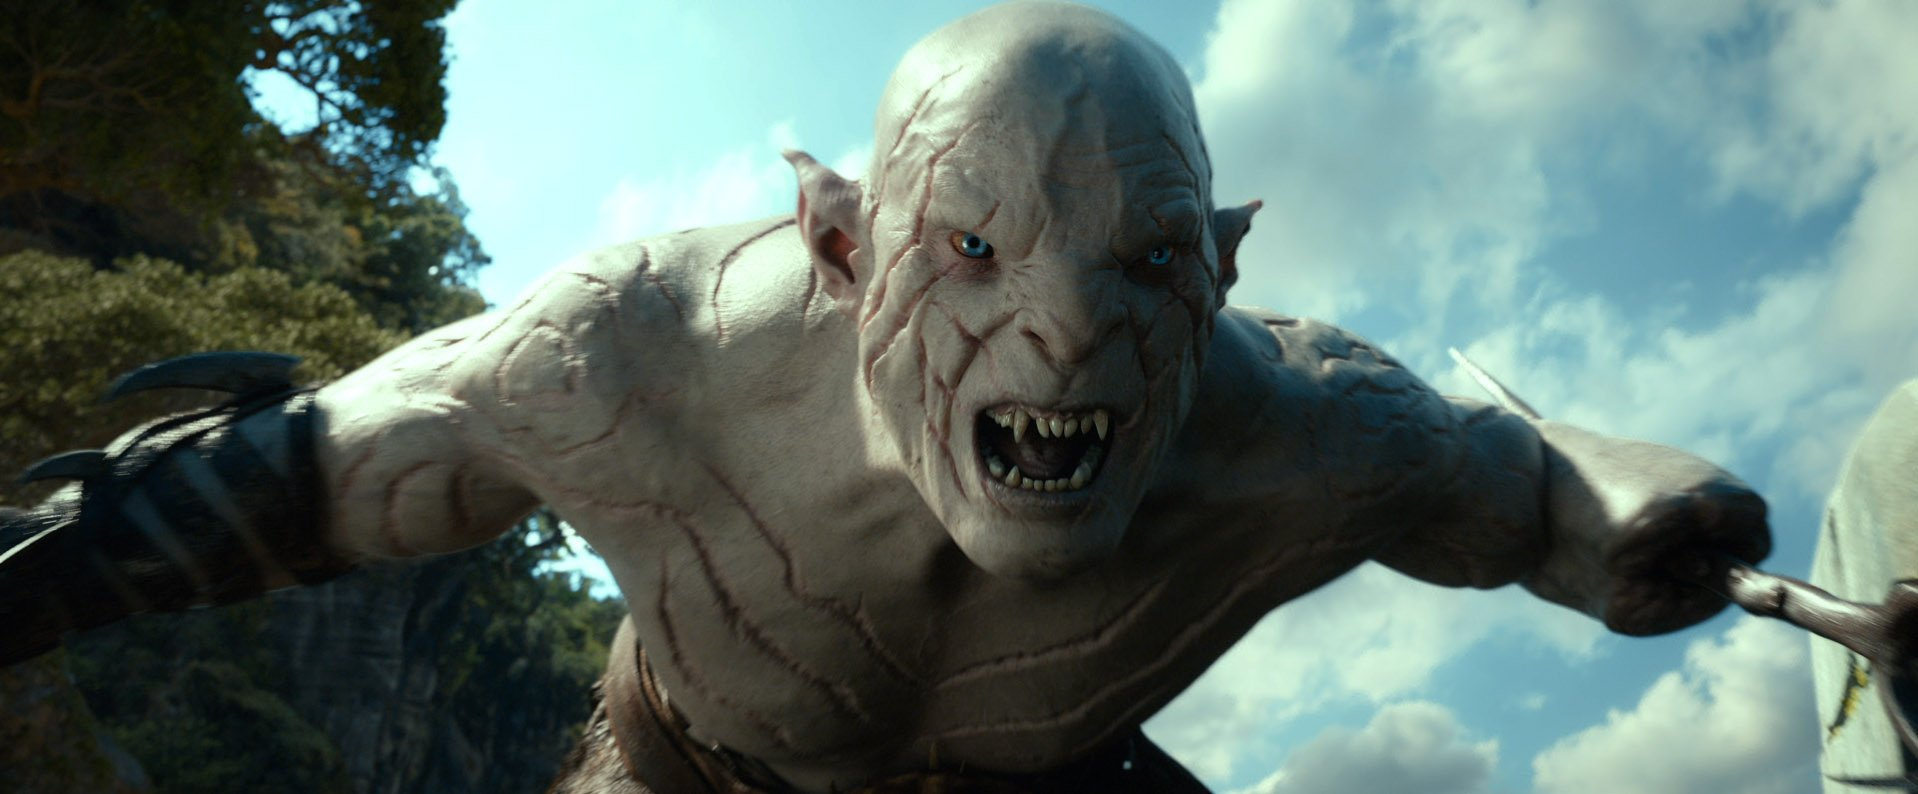 hobbit desolation smaug azog The Hobbit: The Desolation Of Smaug Gallery